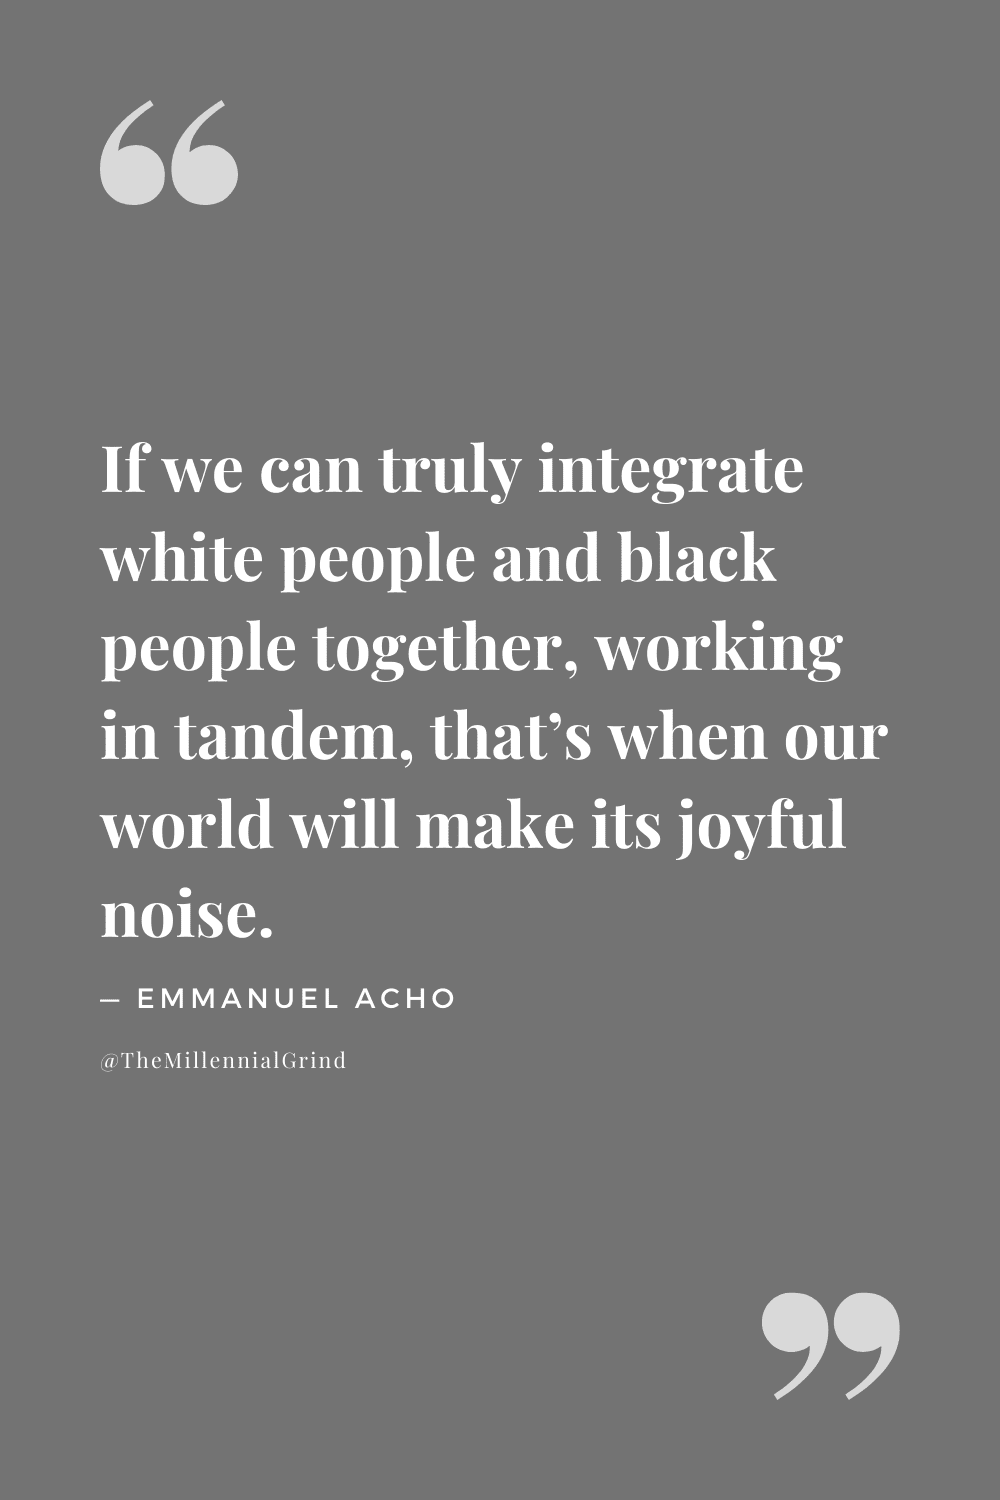 Quotes From Uncomfortable Conversations With a Black Man by Emmanuel Acho